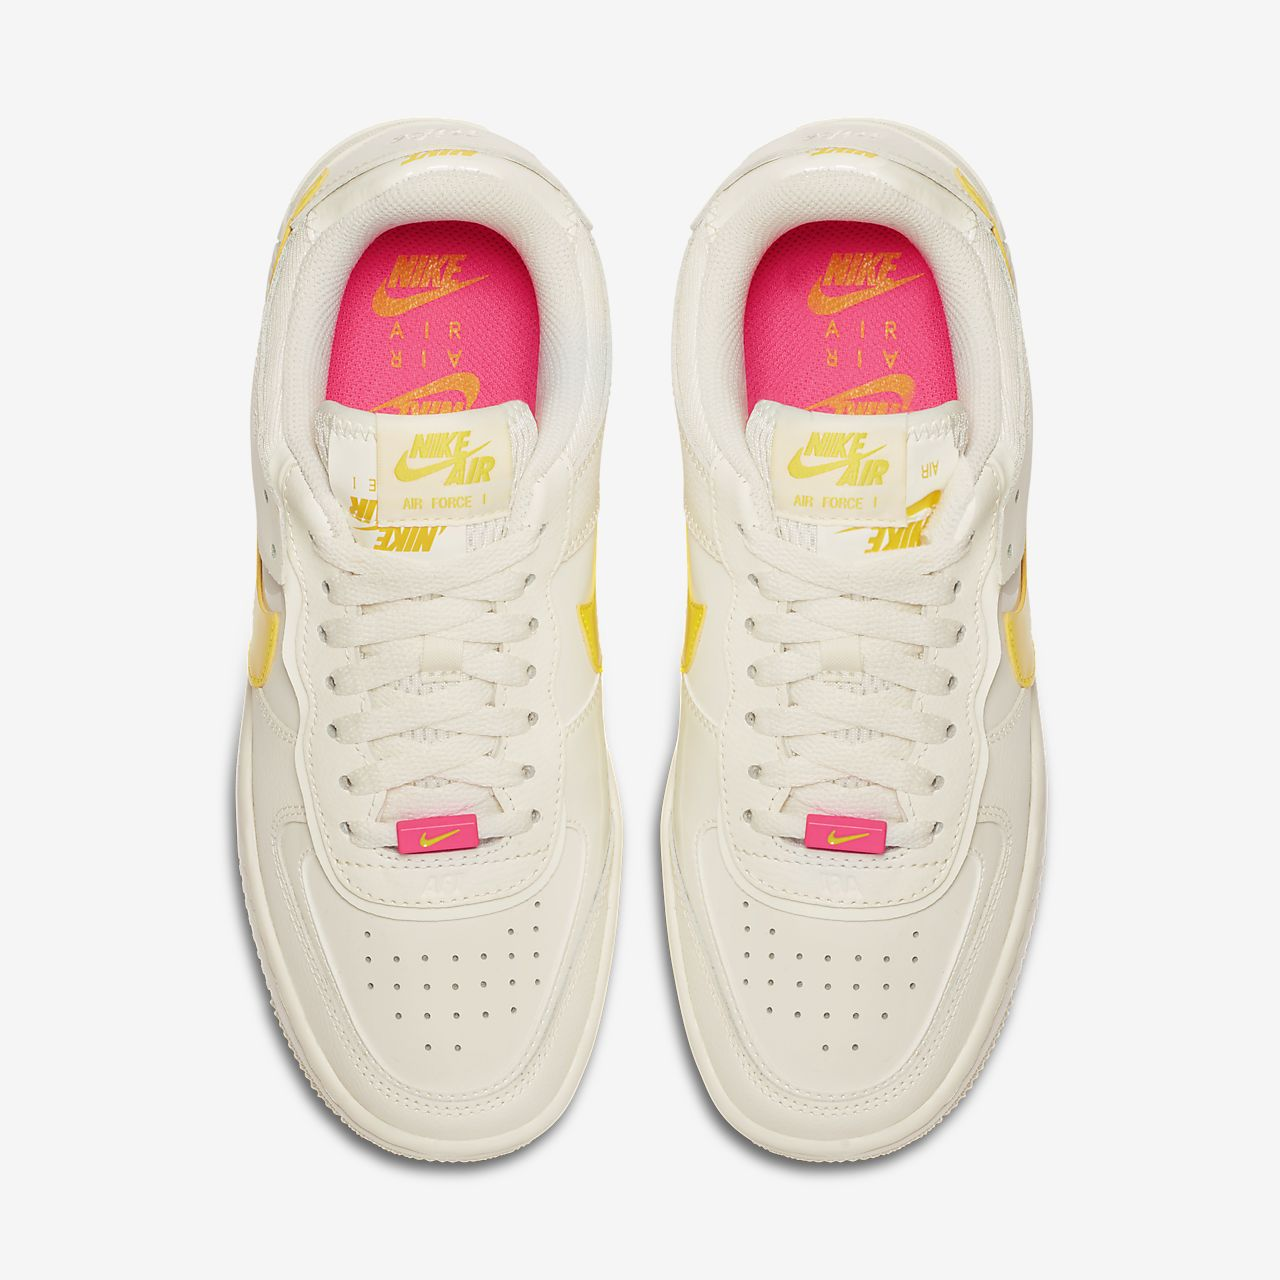 Nike Air Max 97 SE White Opti Yellow | CI9089 100 | The Sole Womens